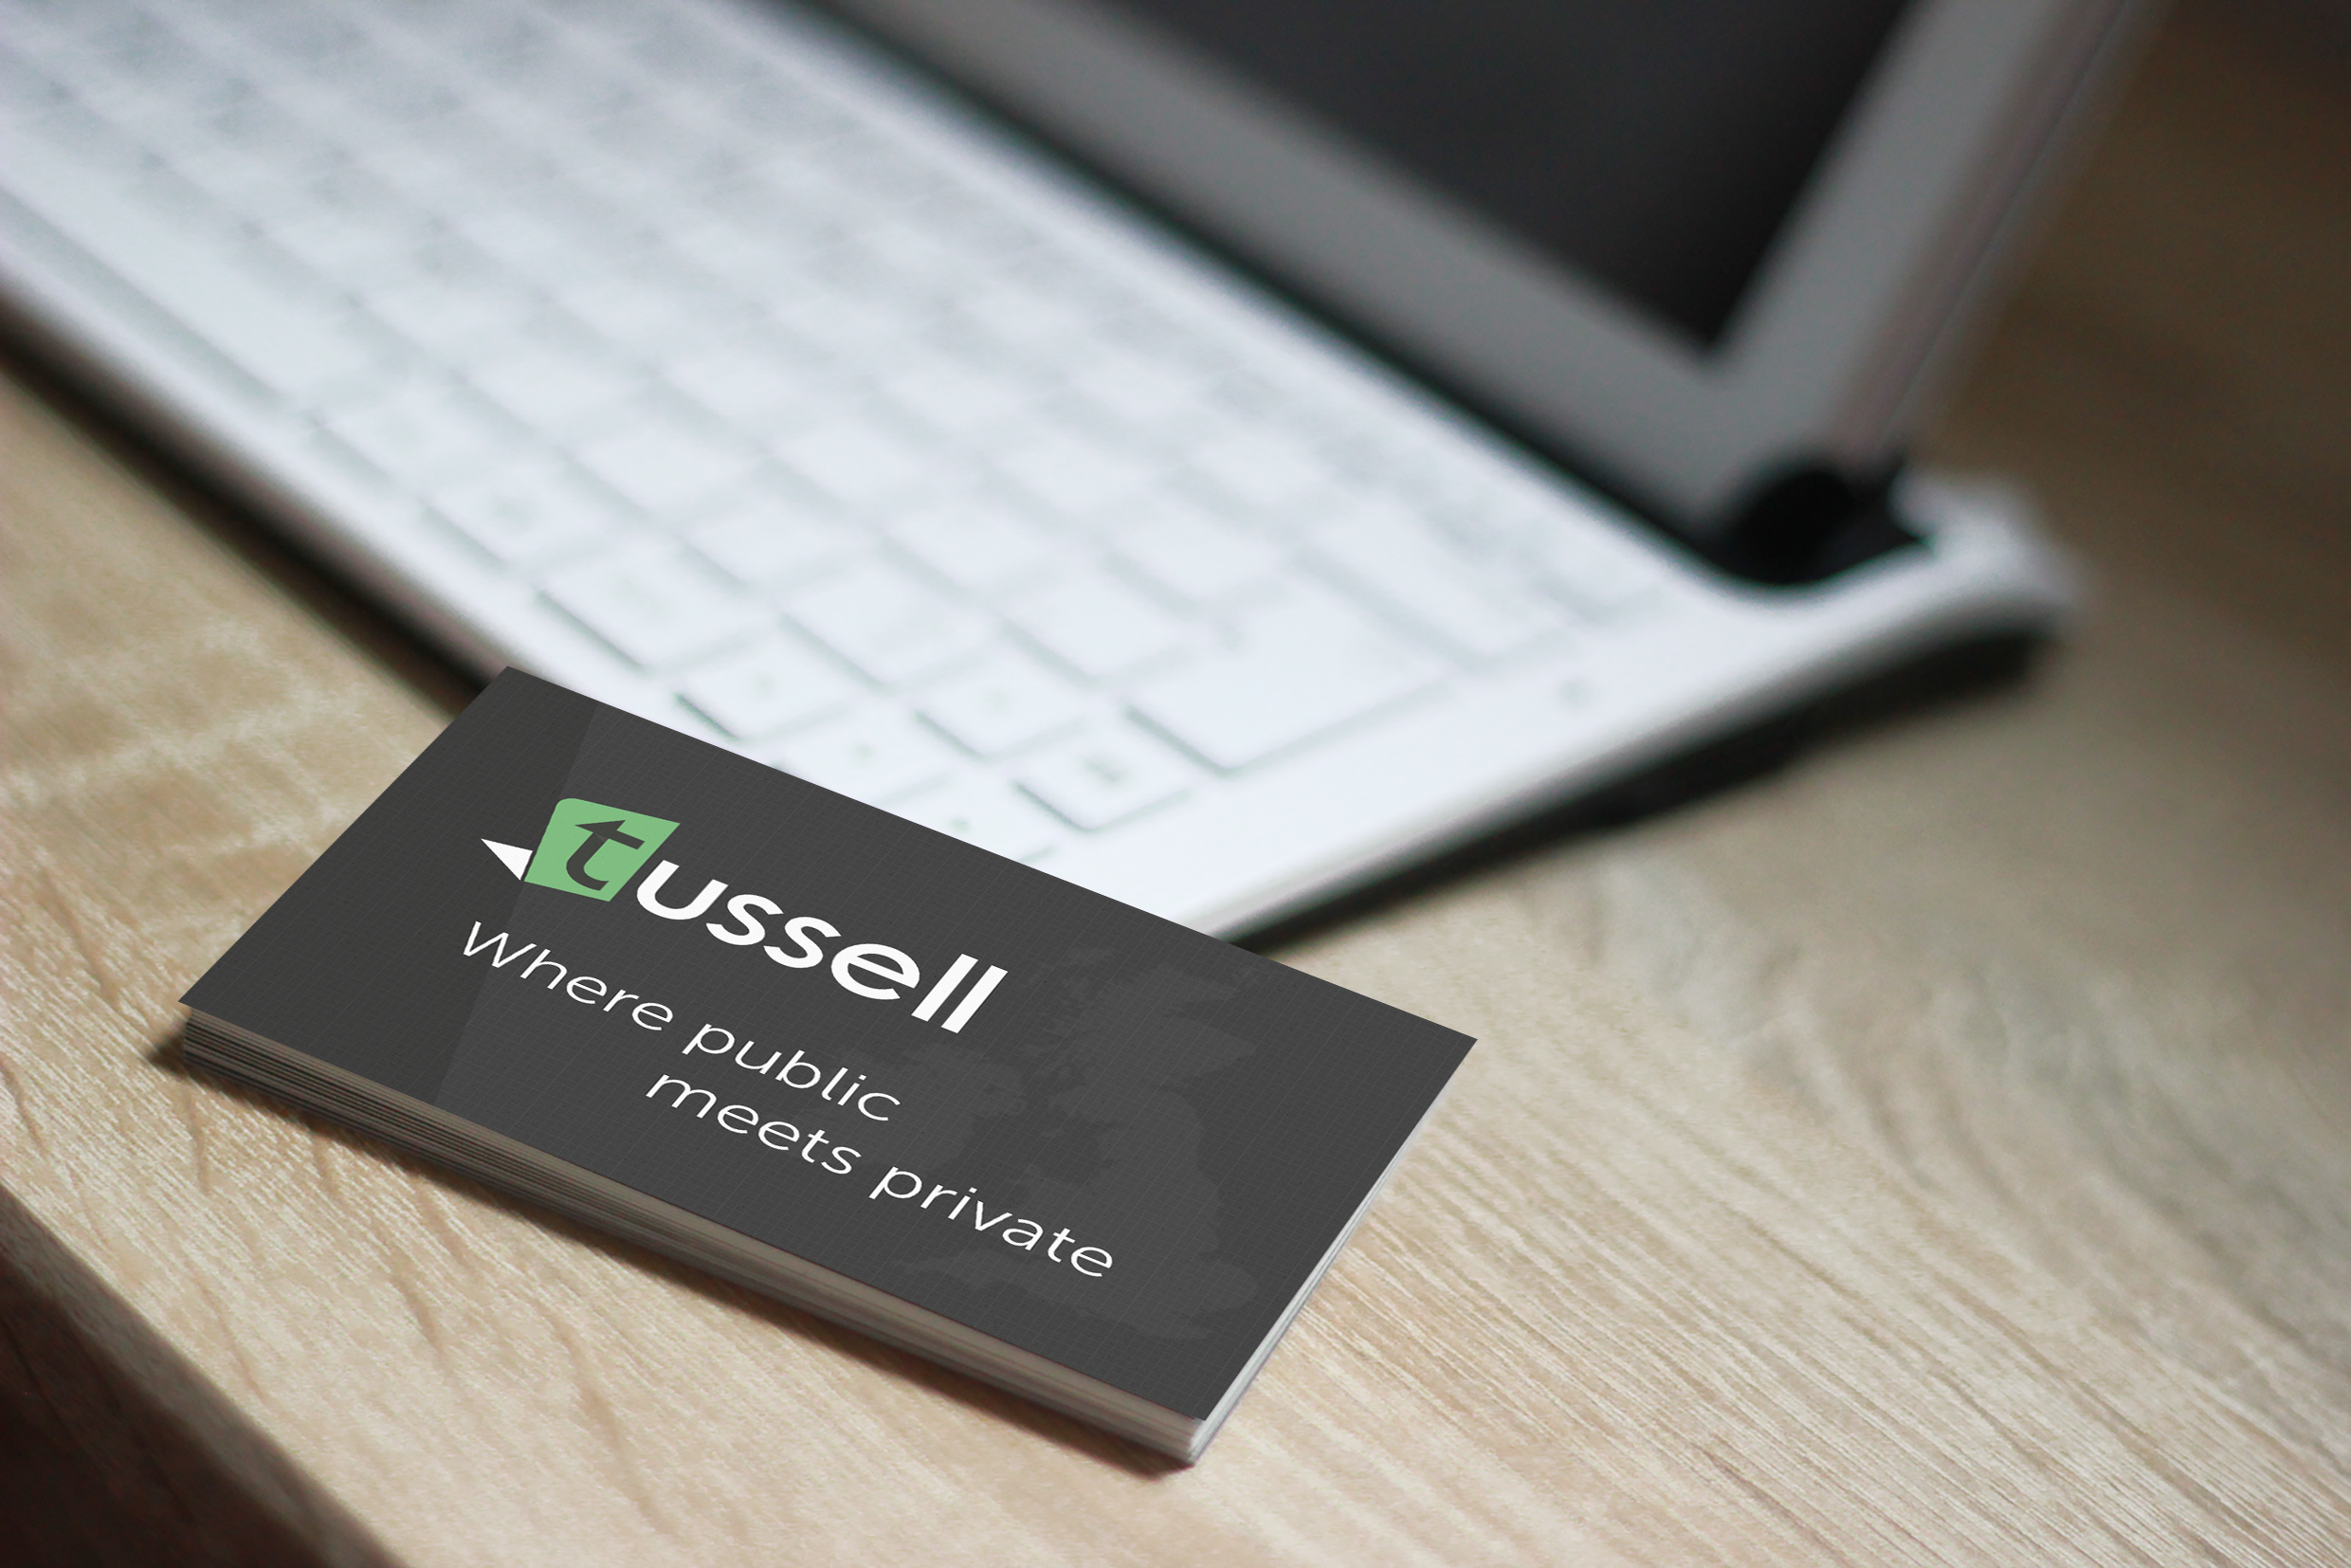 Tussell business card